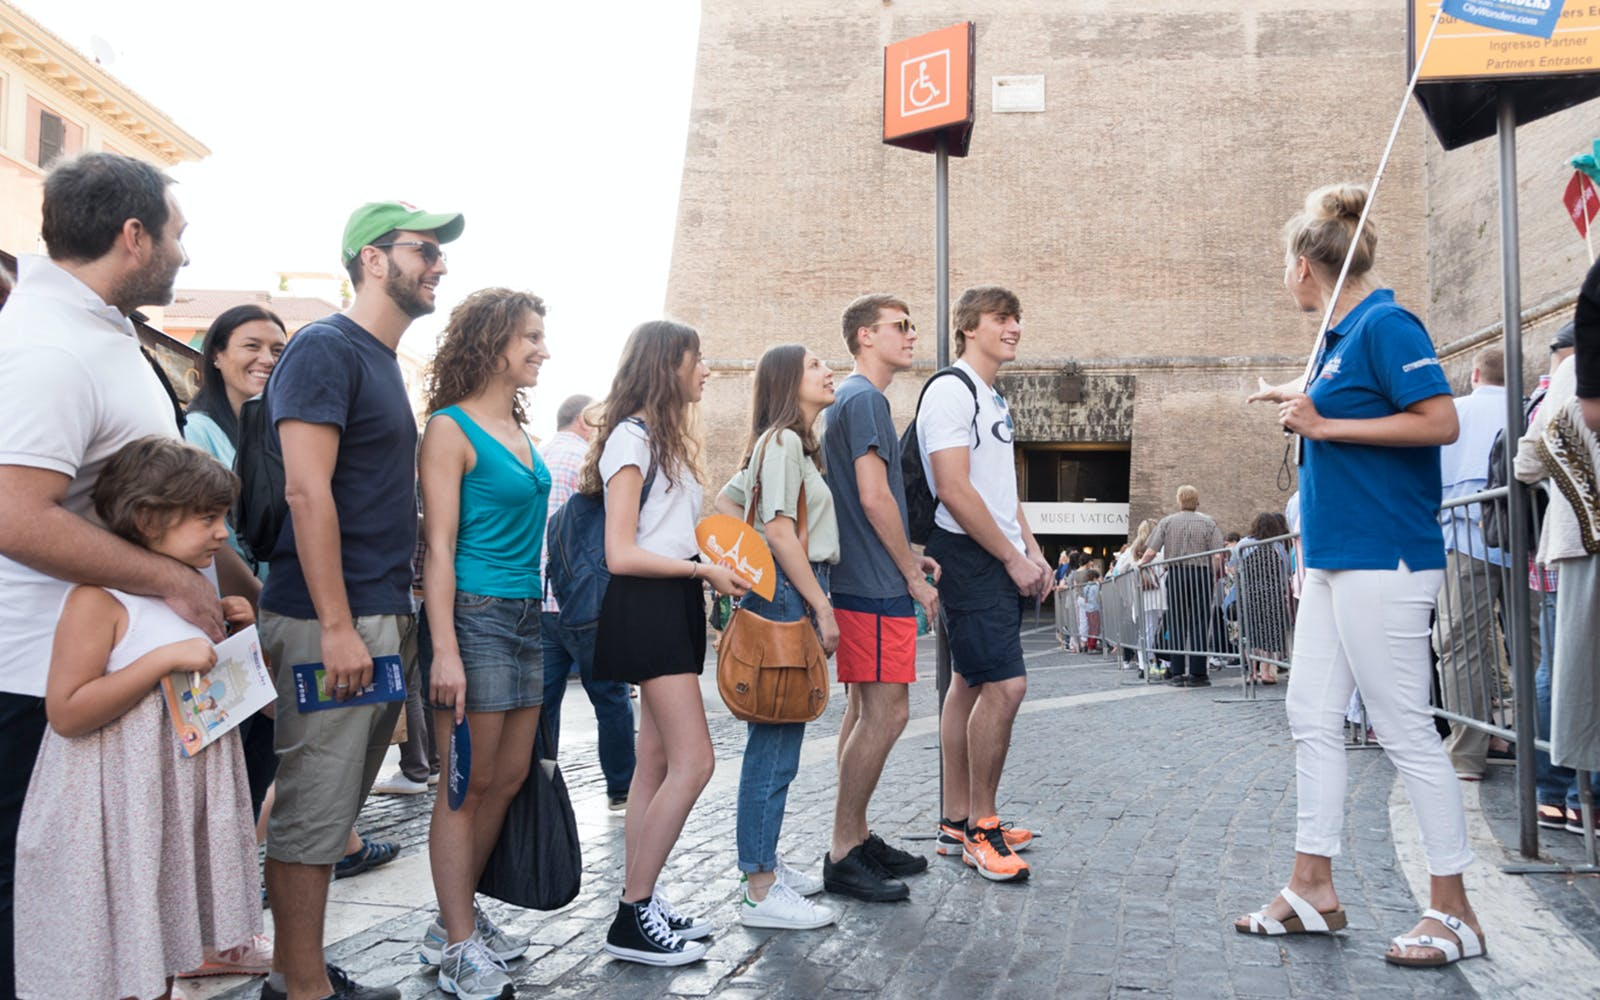 Full Day Guided Tour of Vatican and Colosseum with Skip The Line Access